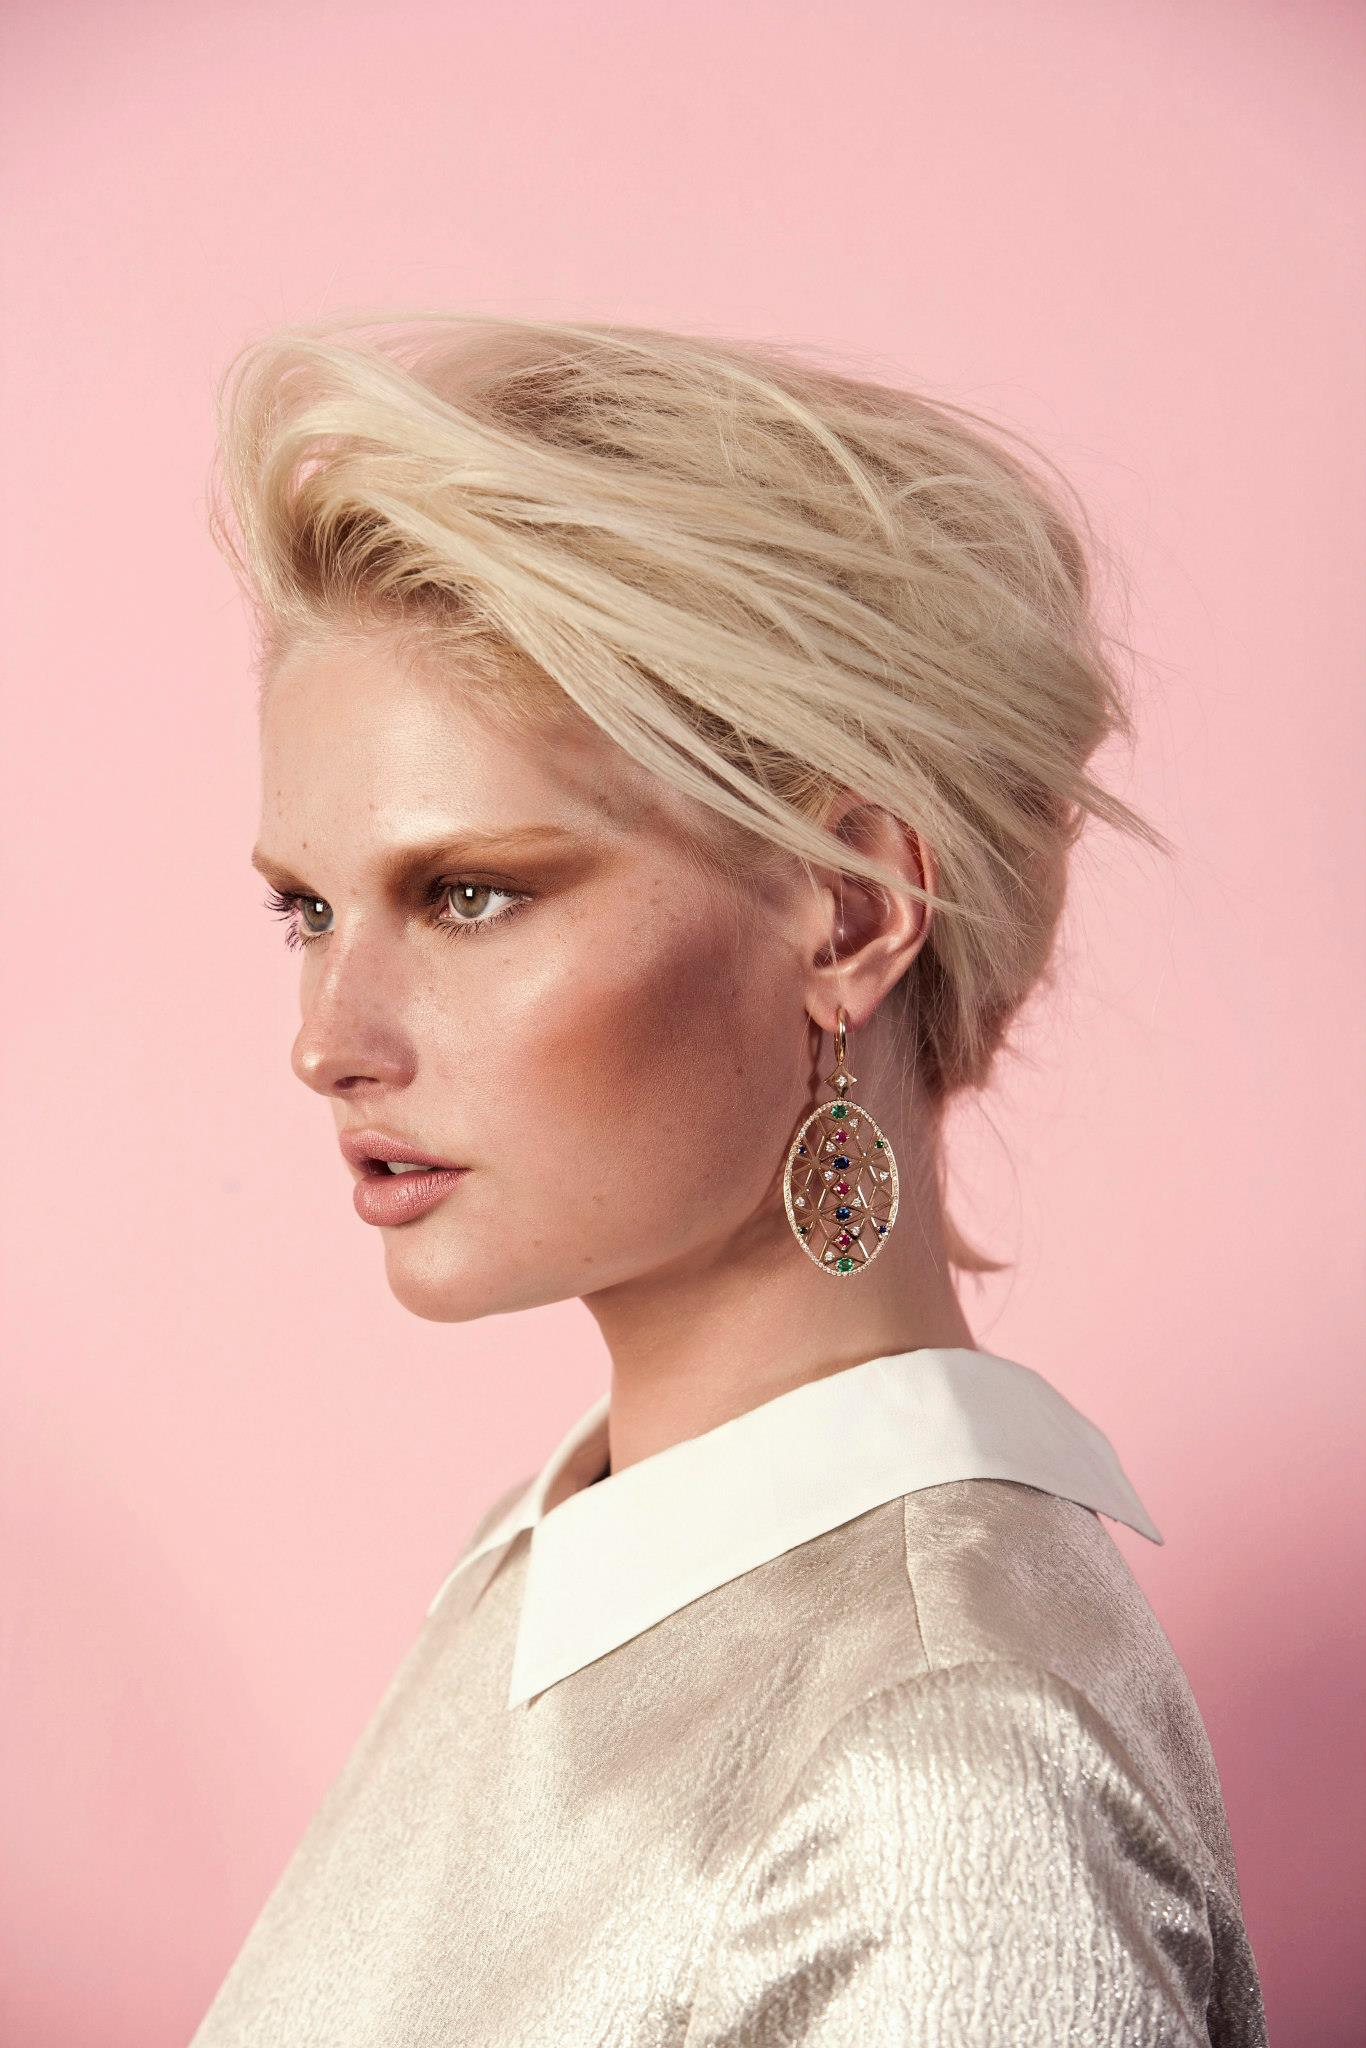 Portuguese Story earrings featured on Vogue Acessory Jewellery Editorial. Production AORP - Portuguese Jewellery.